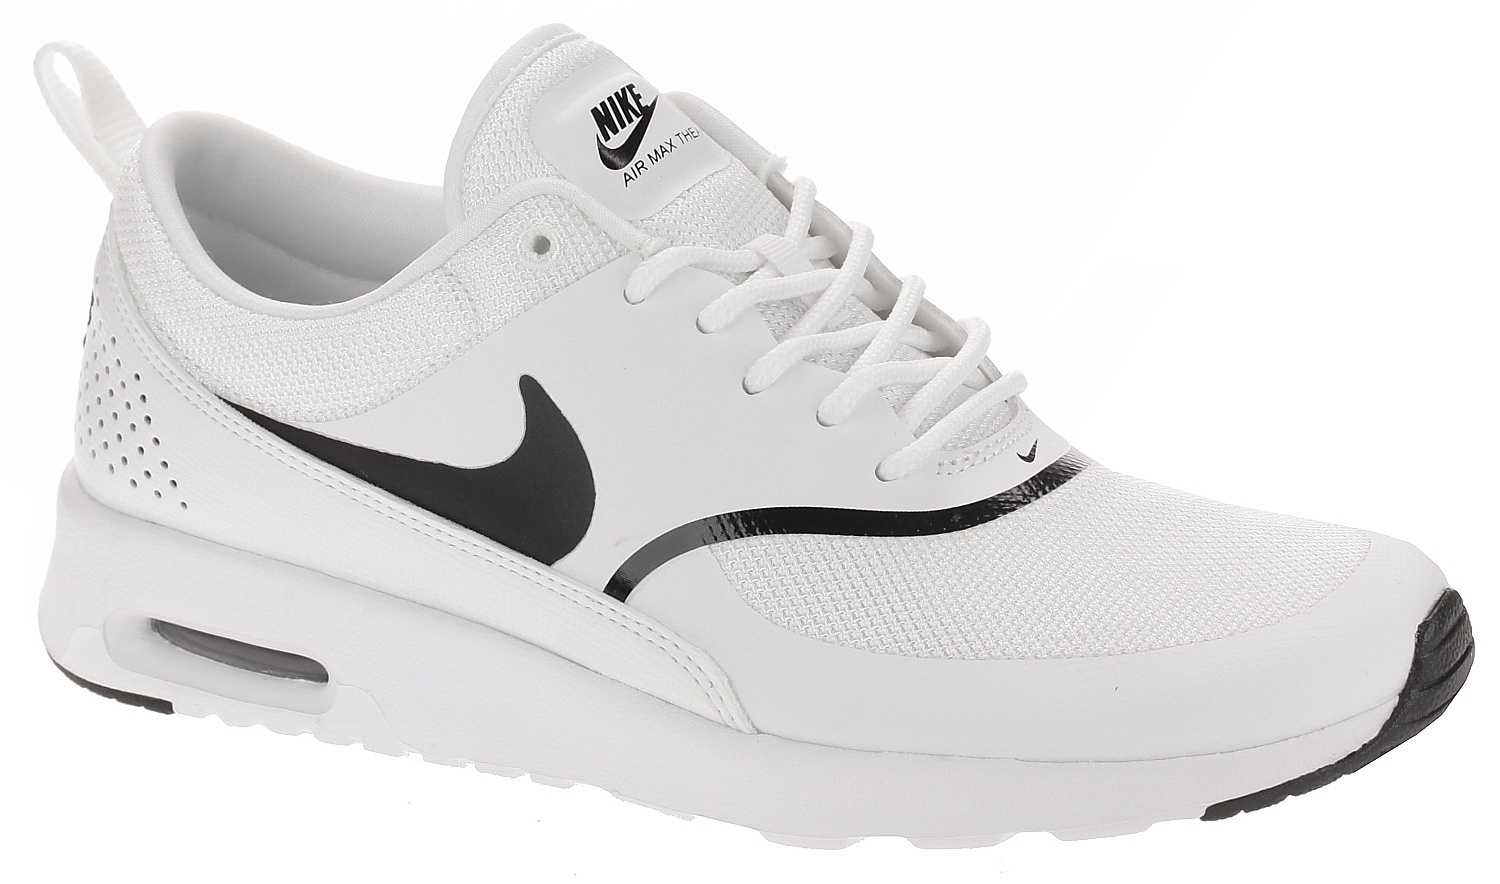 boty Nike Air Max Thea - White Black 36.5 81ee95553bd